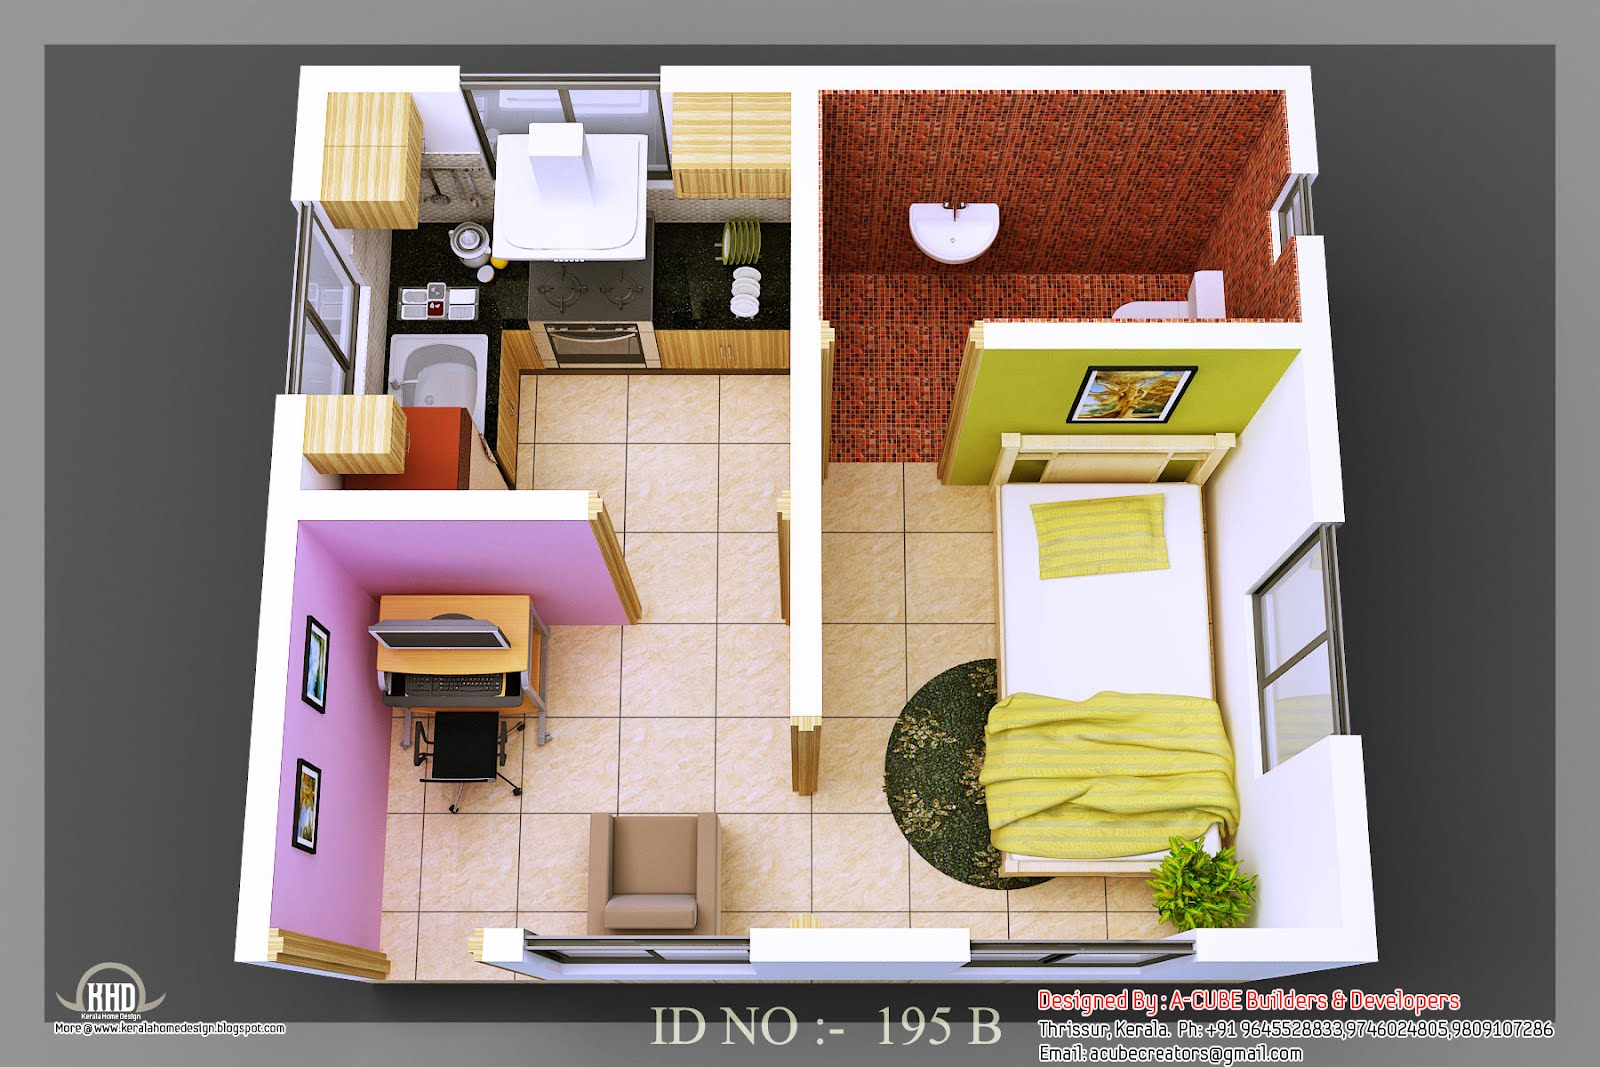 3d isometric views of small house plans a taste in heaven. Black Bedroom Furniture Sets. Home Design Ideas